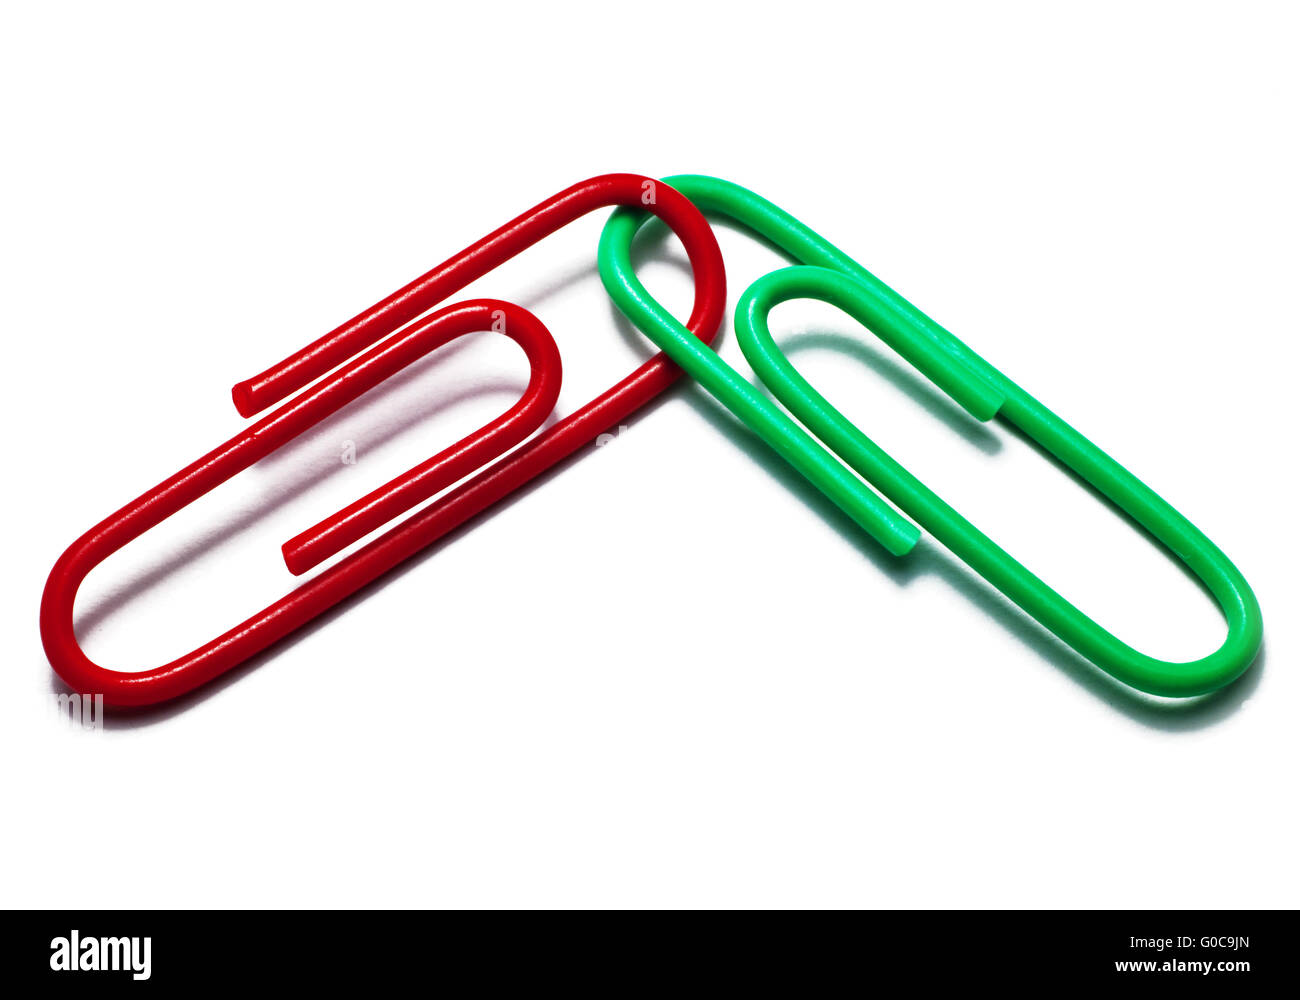 Red and green paper clips, symbolic image - Stock Image